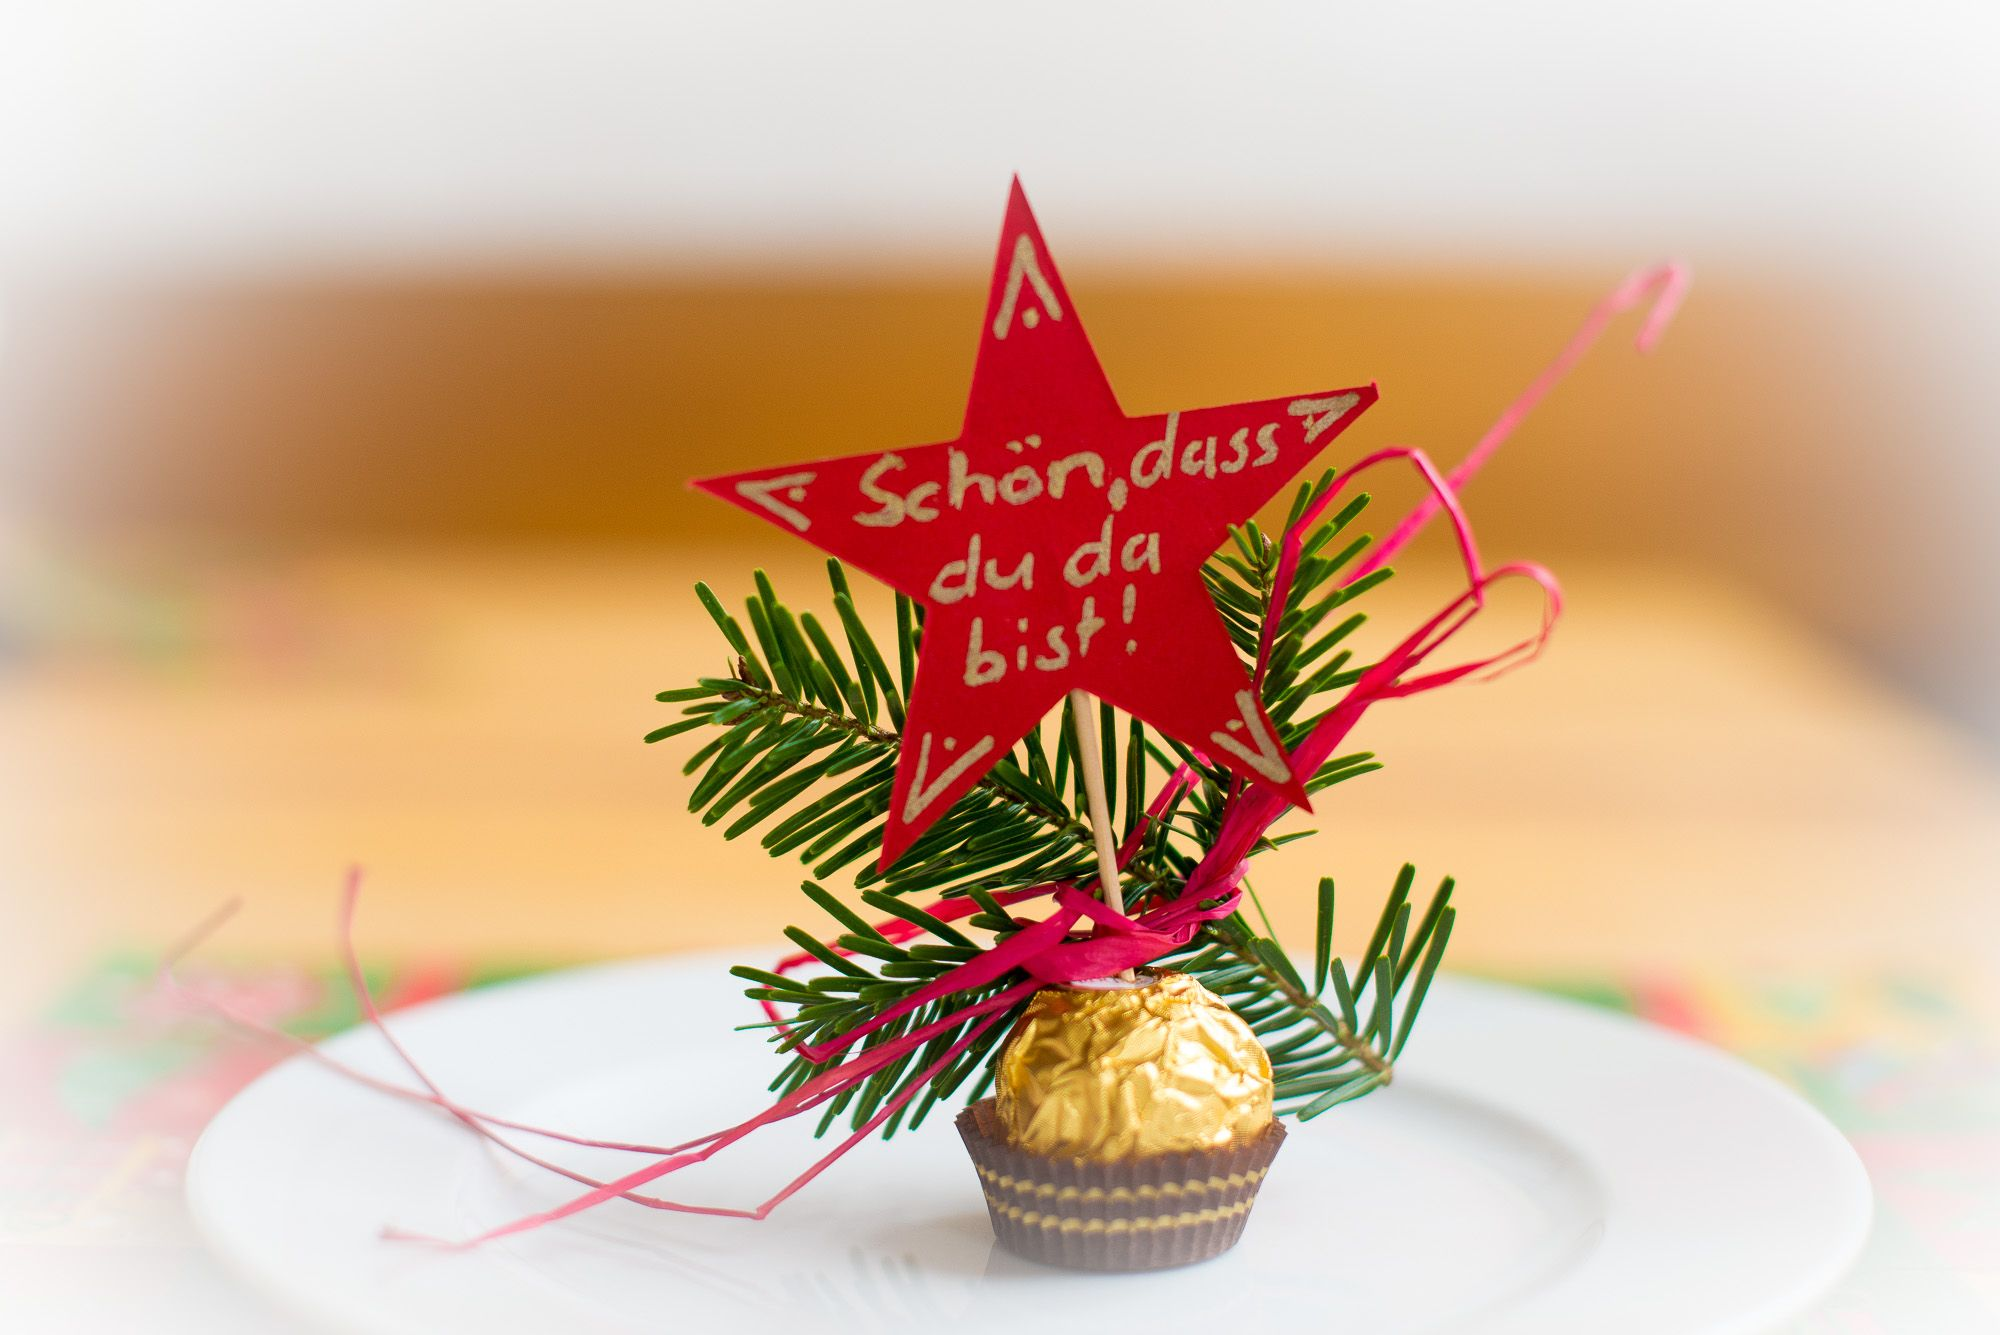 Diy tischdeko advent weihnachten fr hst ck homemade for Advent tischdeko